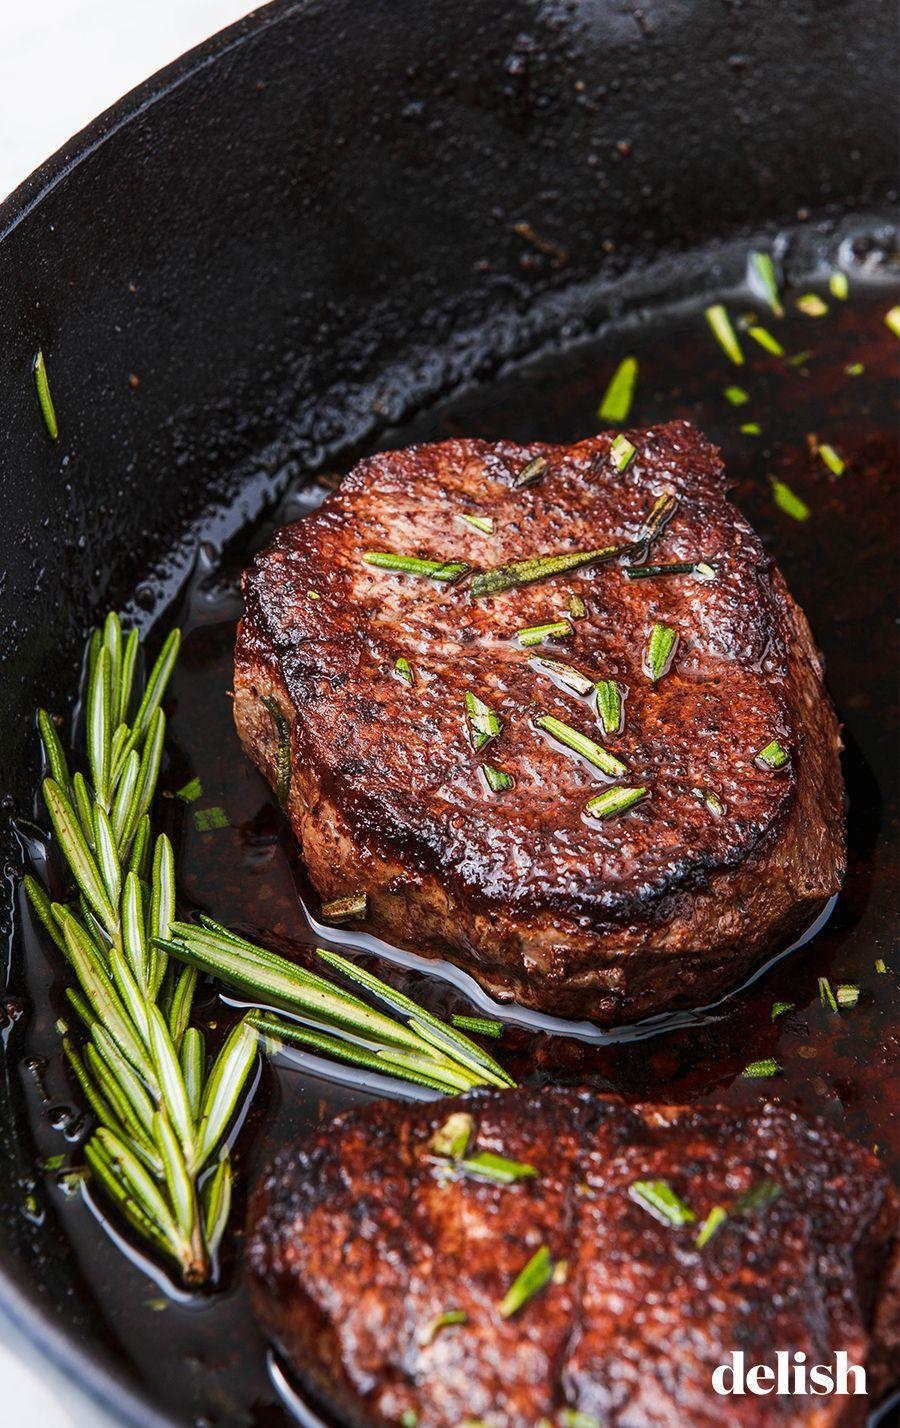 """<p>So simple. So perfect. So keto.</p><p>Get the recipe from <a href=""""https://www.delish.com/cooking/recipe-ideas/a23515113/how-to-cook-filet-mignon/"""" rel=""""nofollow noopener"""" target=""""_blank"""" data-ylk=""""slk:Delish"""" class=""""link rapid-noclick-resp"""">Delish</a>.</p>"""